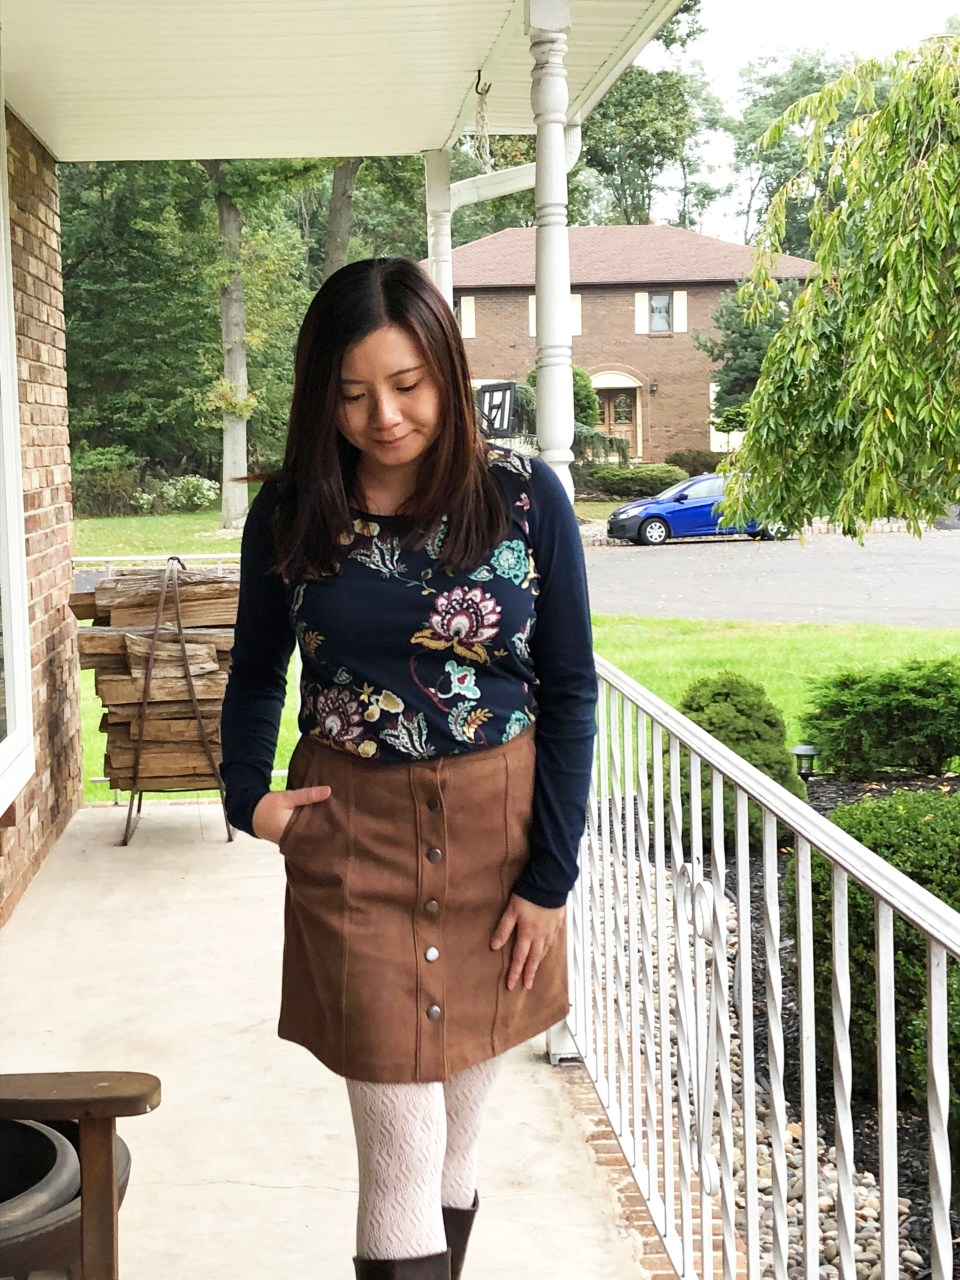 Painted Floral Top + Faux Suede Skirt 7